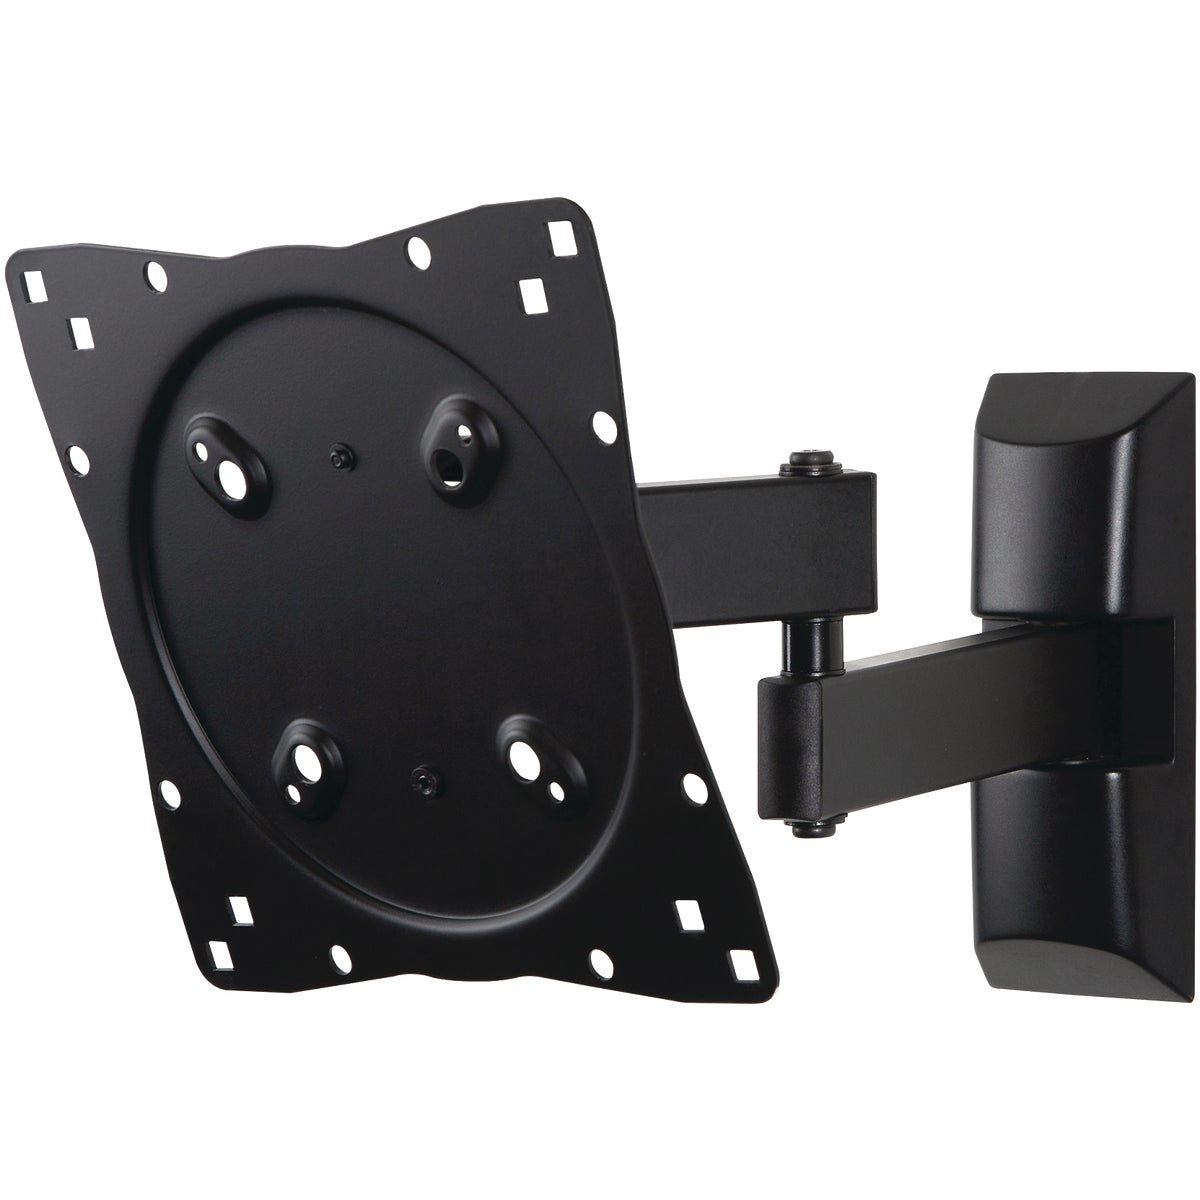 22-37 FULL MOTN TV MOUNT - HSA737 by Peerless Industries